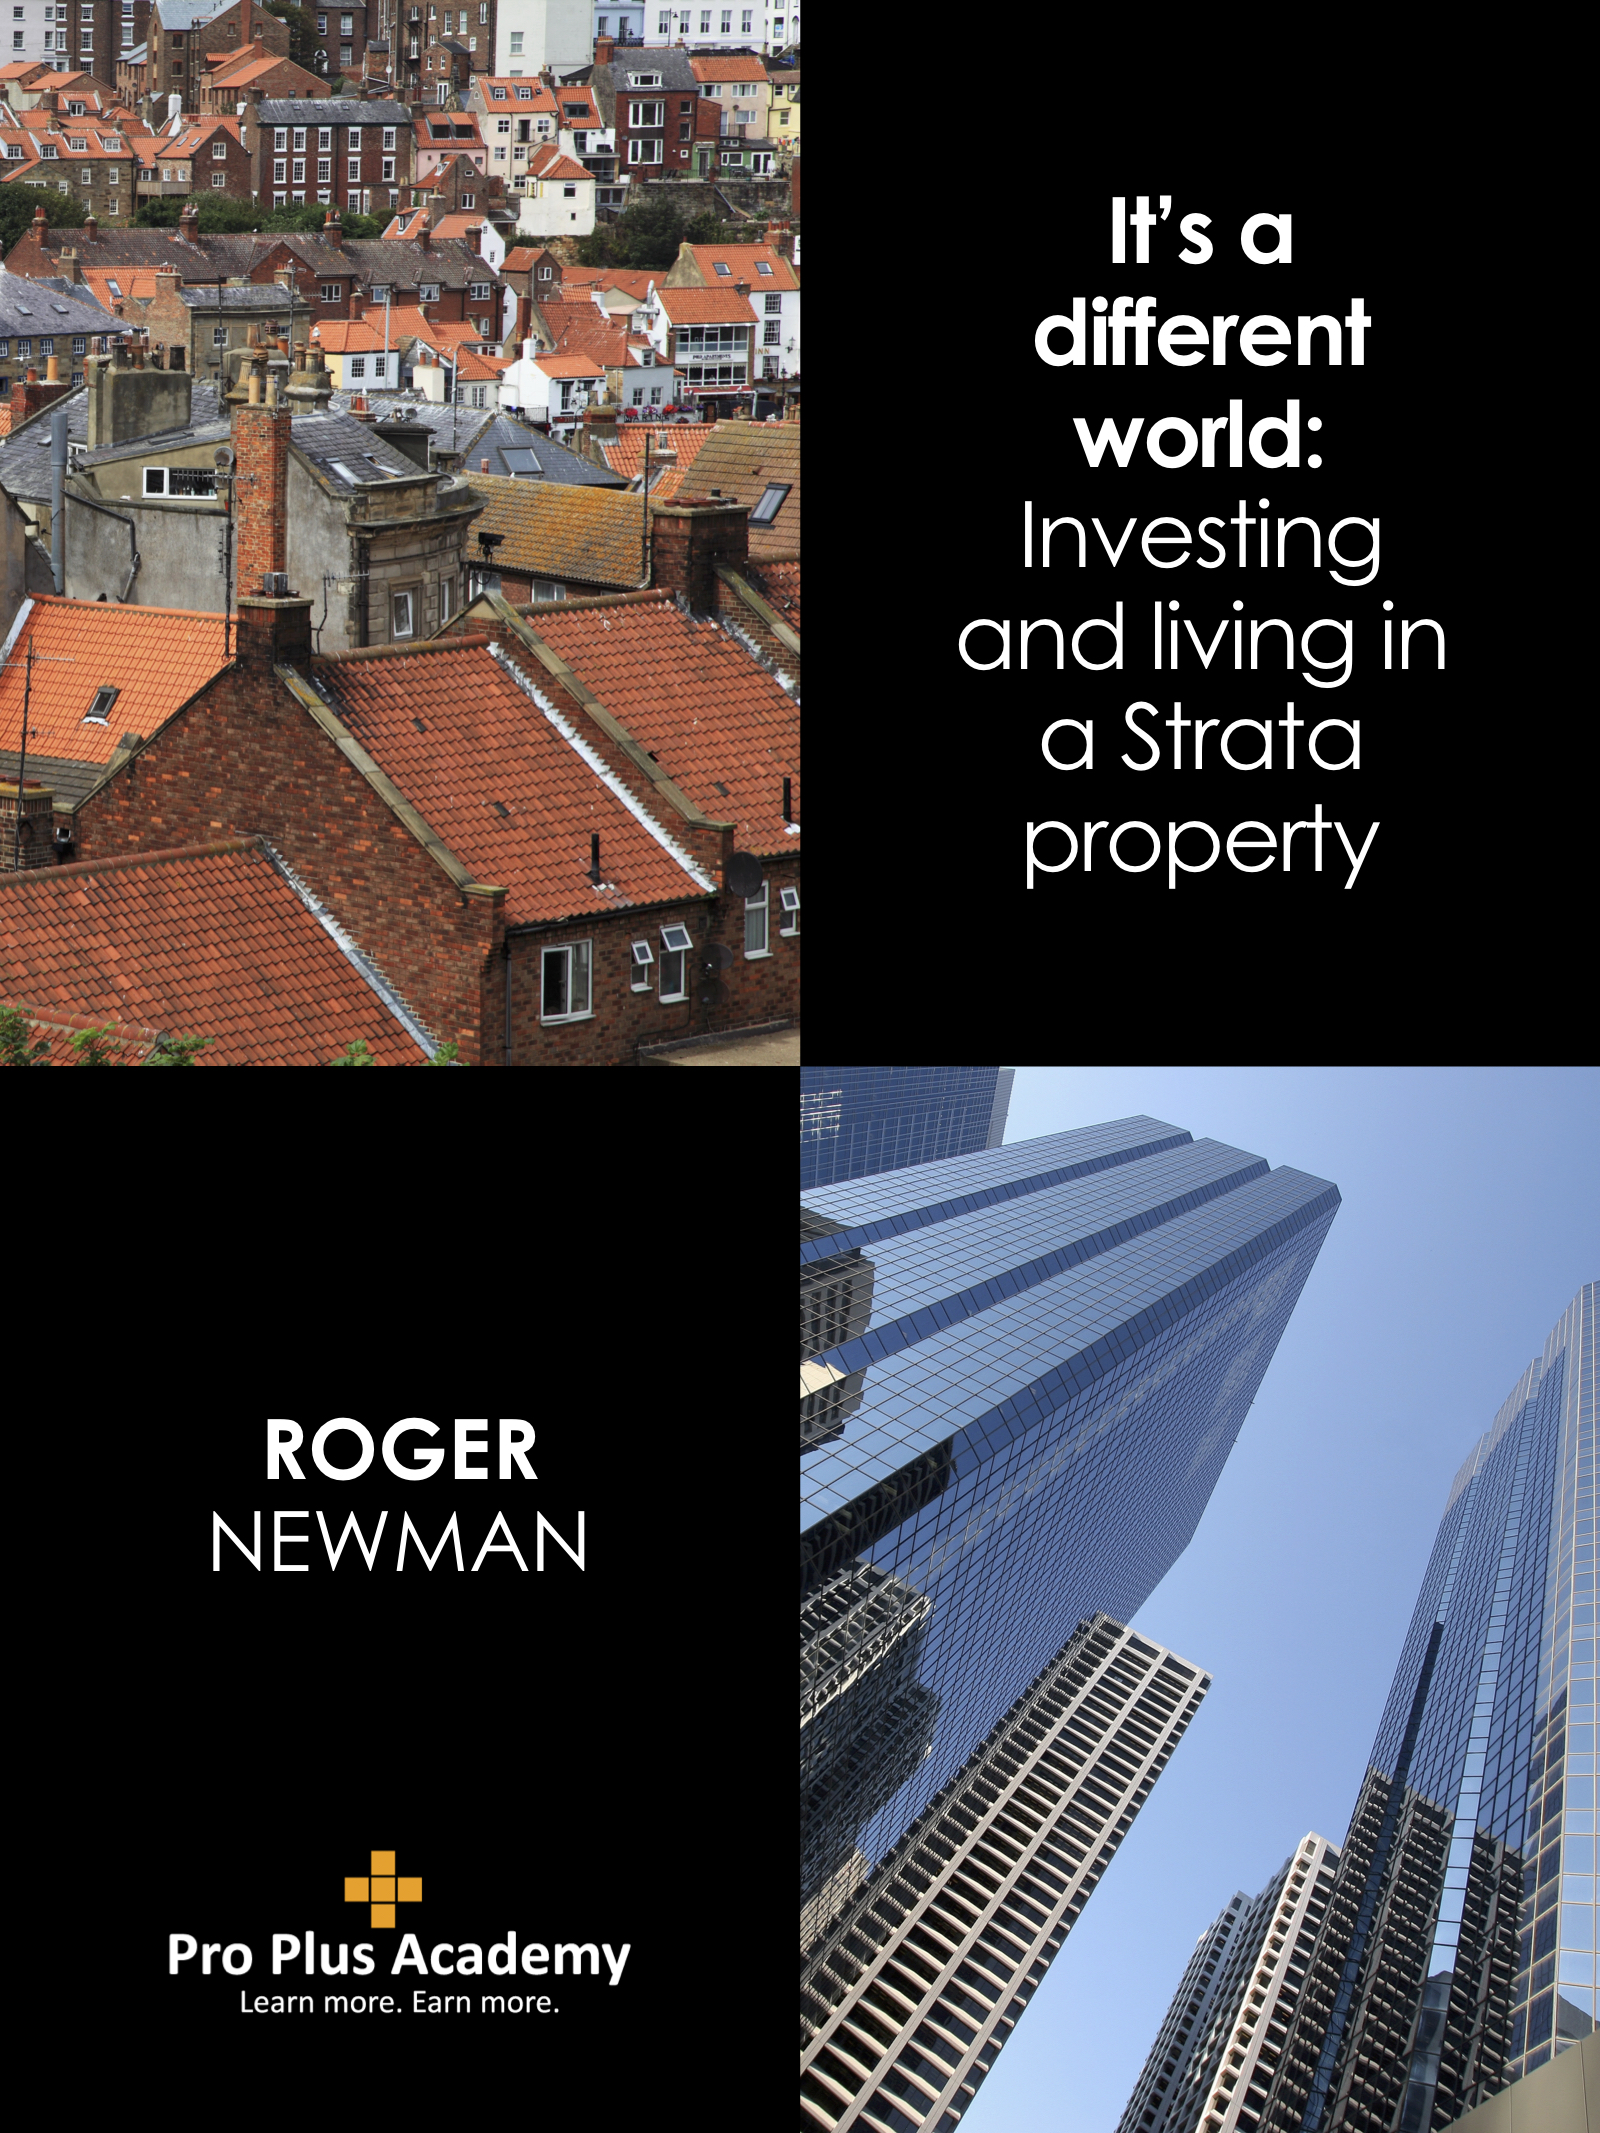 It's a different world: Investing and living in a Strata property